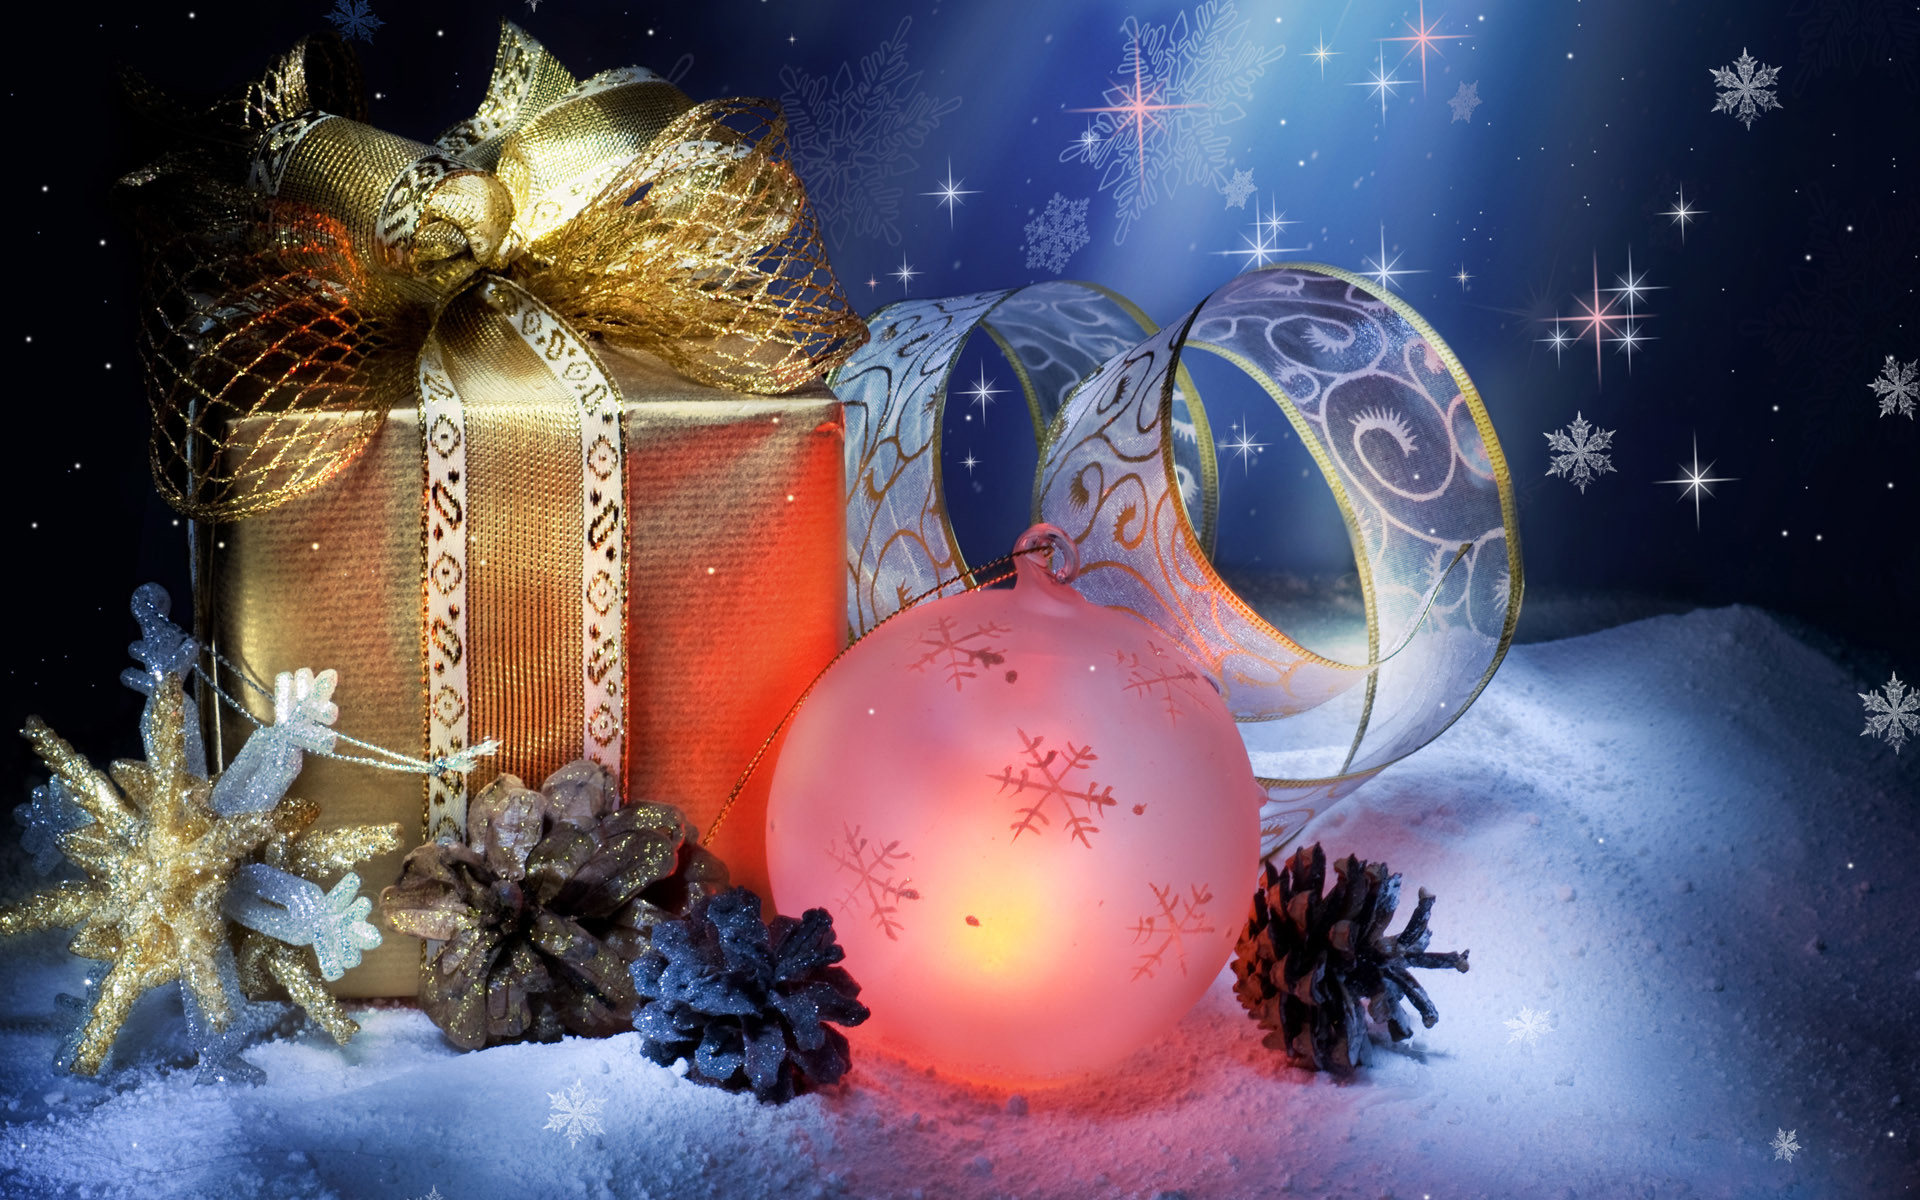 Christmas Wallpaper and Screensavers 60 images 1920x1200